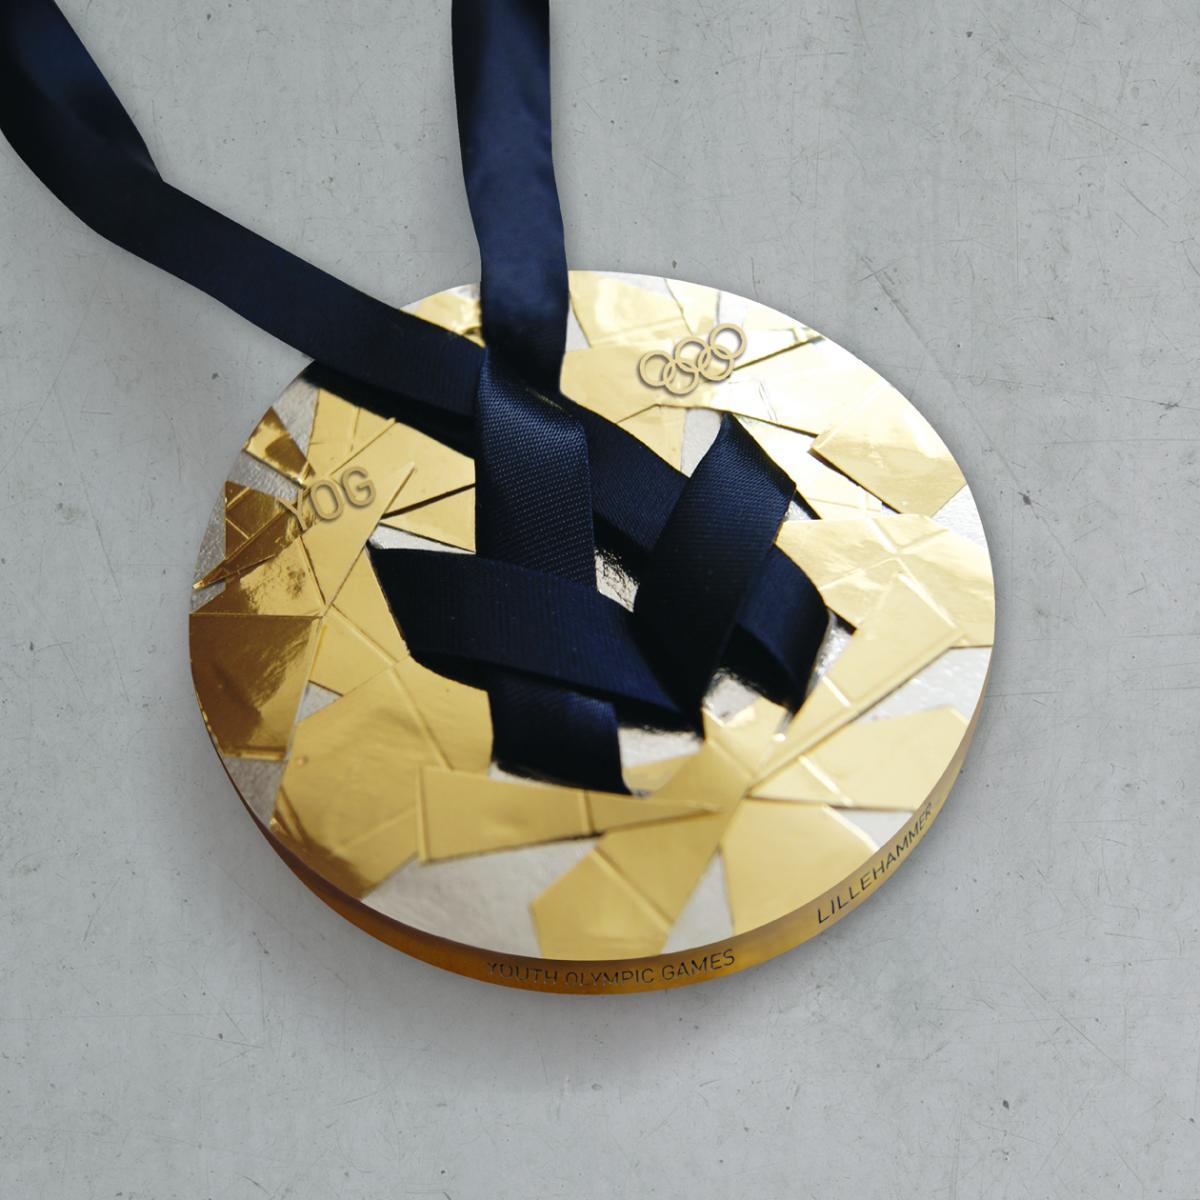 Youth Olympic Games medalje→